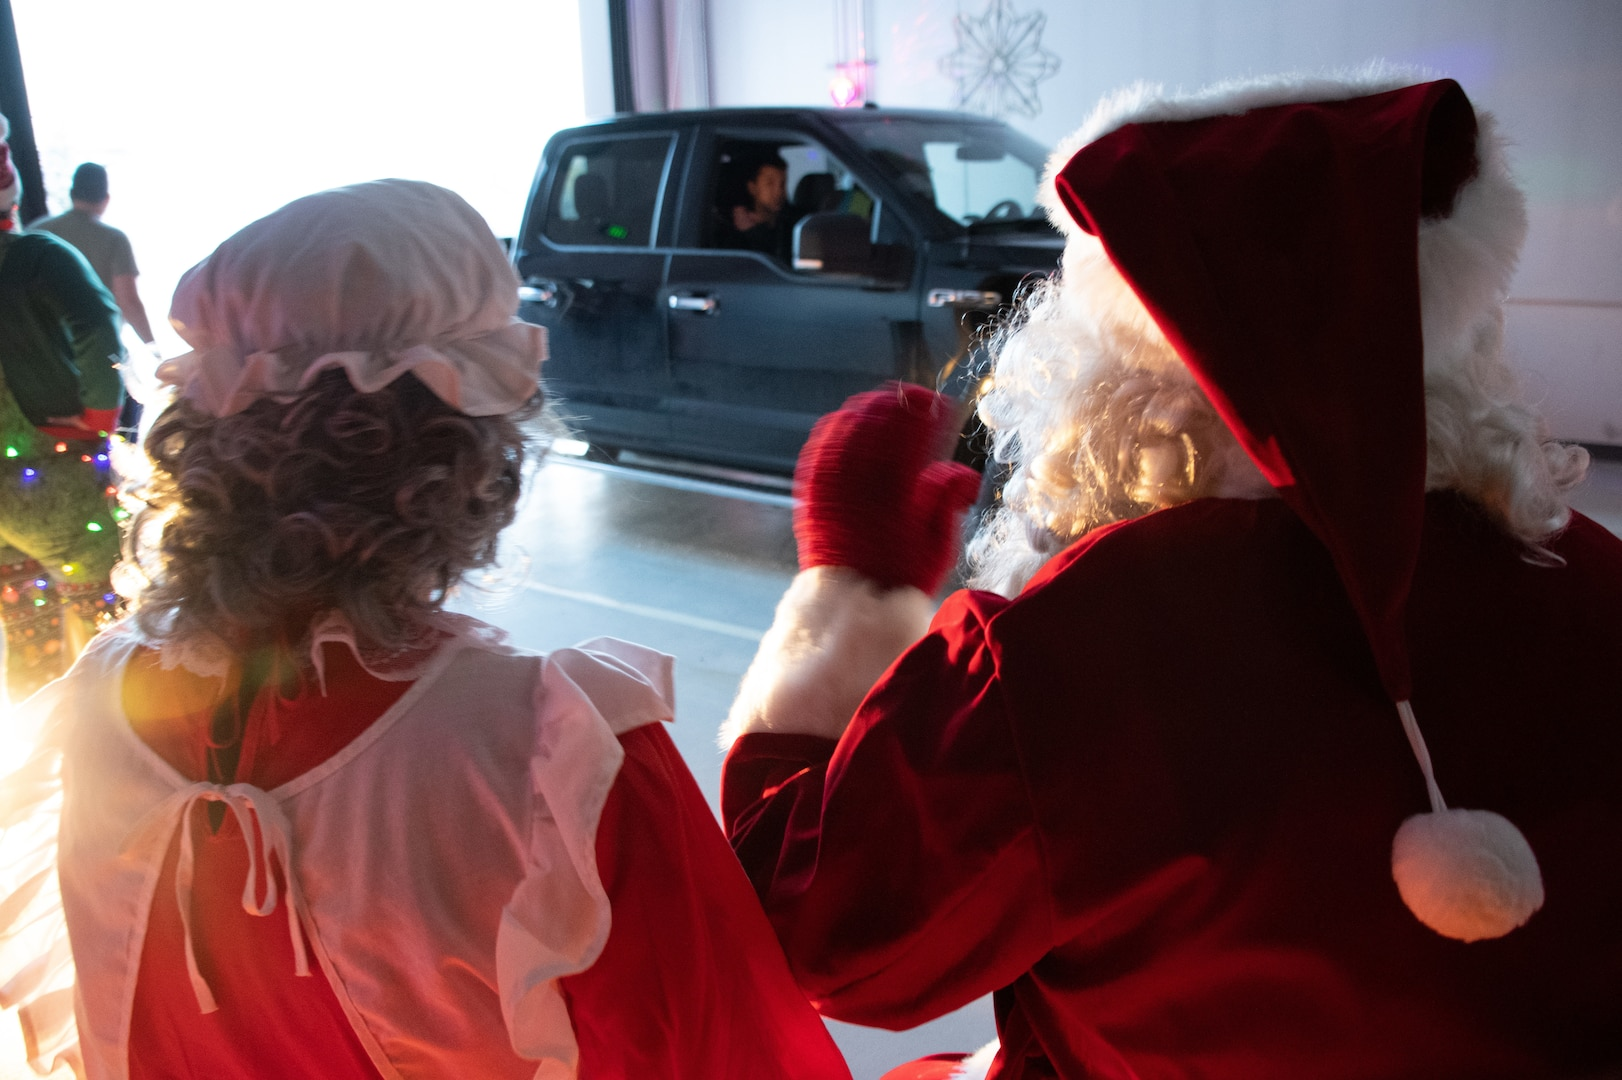 The Alaska Air National Guard's 168th Wing didn't let the COVID-19 pandemic interrupt the annual holiday celebration at Eielson Air Force Base on Dec. 12, 2020.Volunteers from different squadrons built holiday scenes families could viewed in a drive-thru viewing.